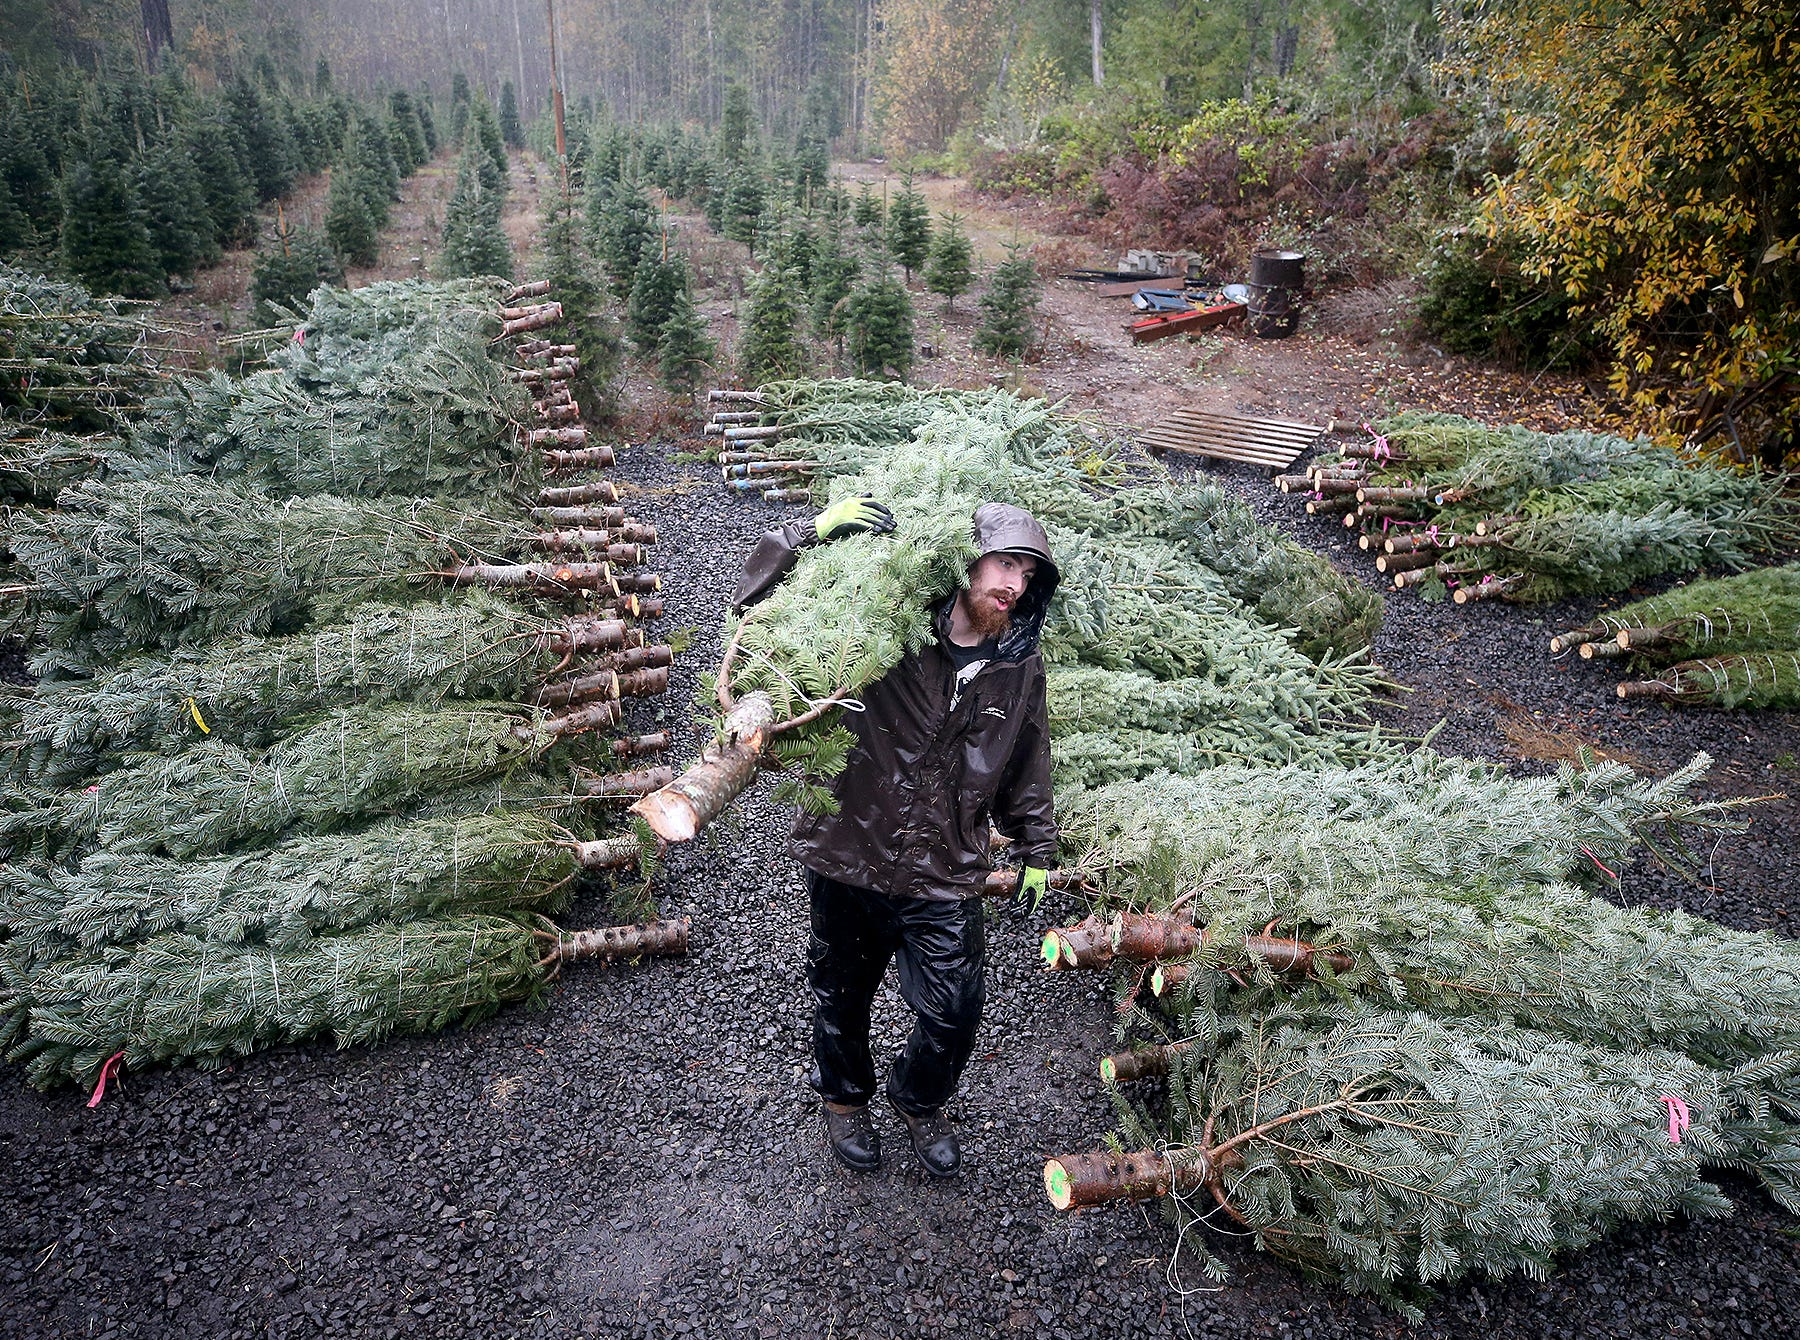 Olmsted Tree Farm worker Seth Morgan moves Christmas trees on Wednesday, November, 21, 2018 at the tree farm in Poulsbo. The family has run a tree business for 50 years. Friday, November 23, is the opening day for the Poulsbo U-cut tree farm.